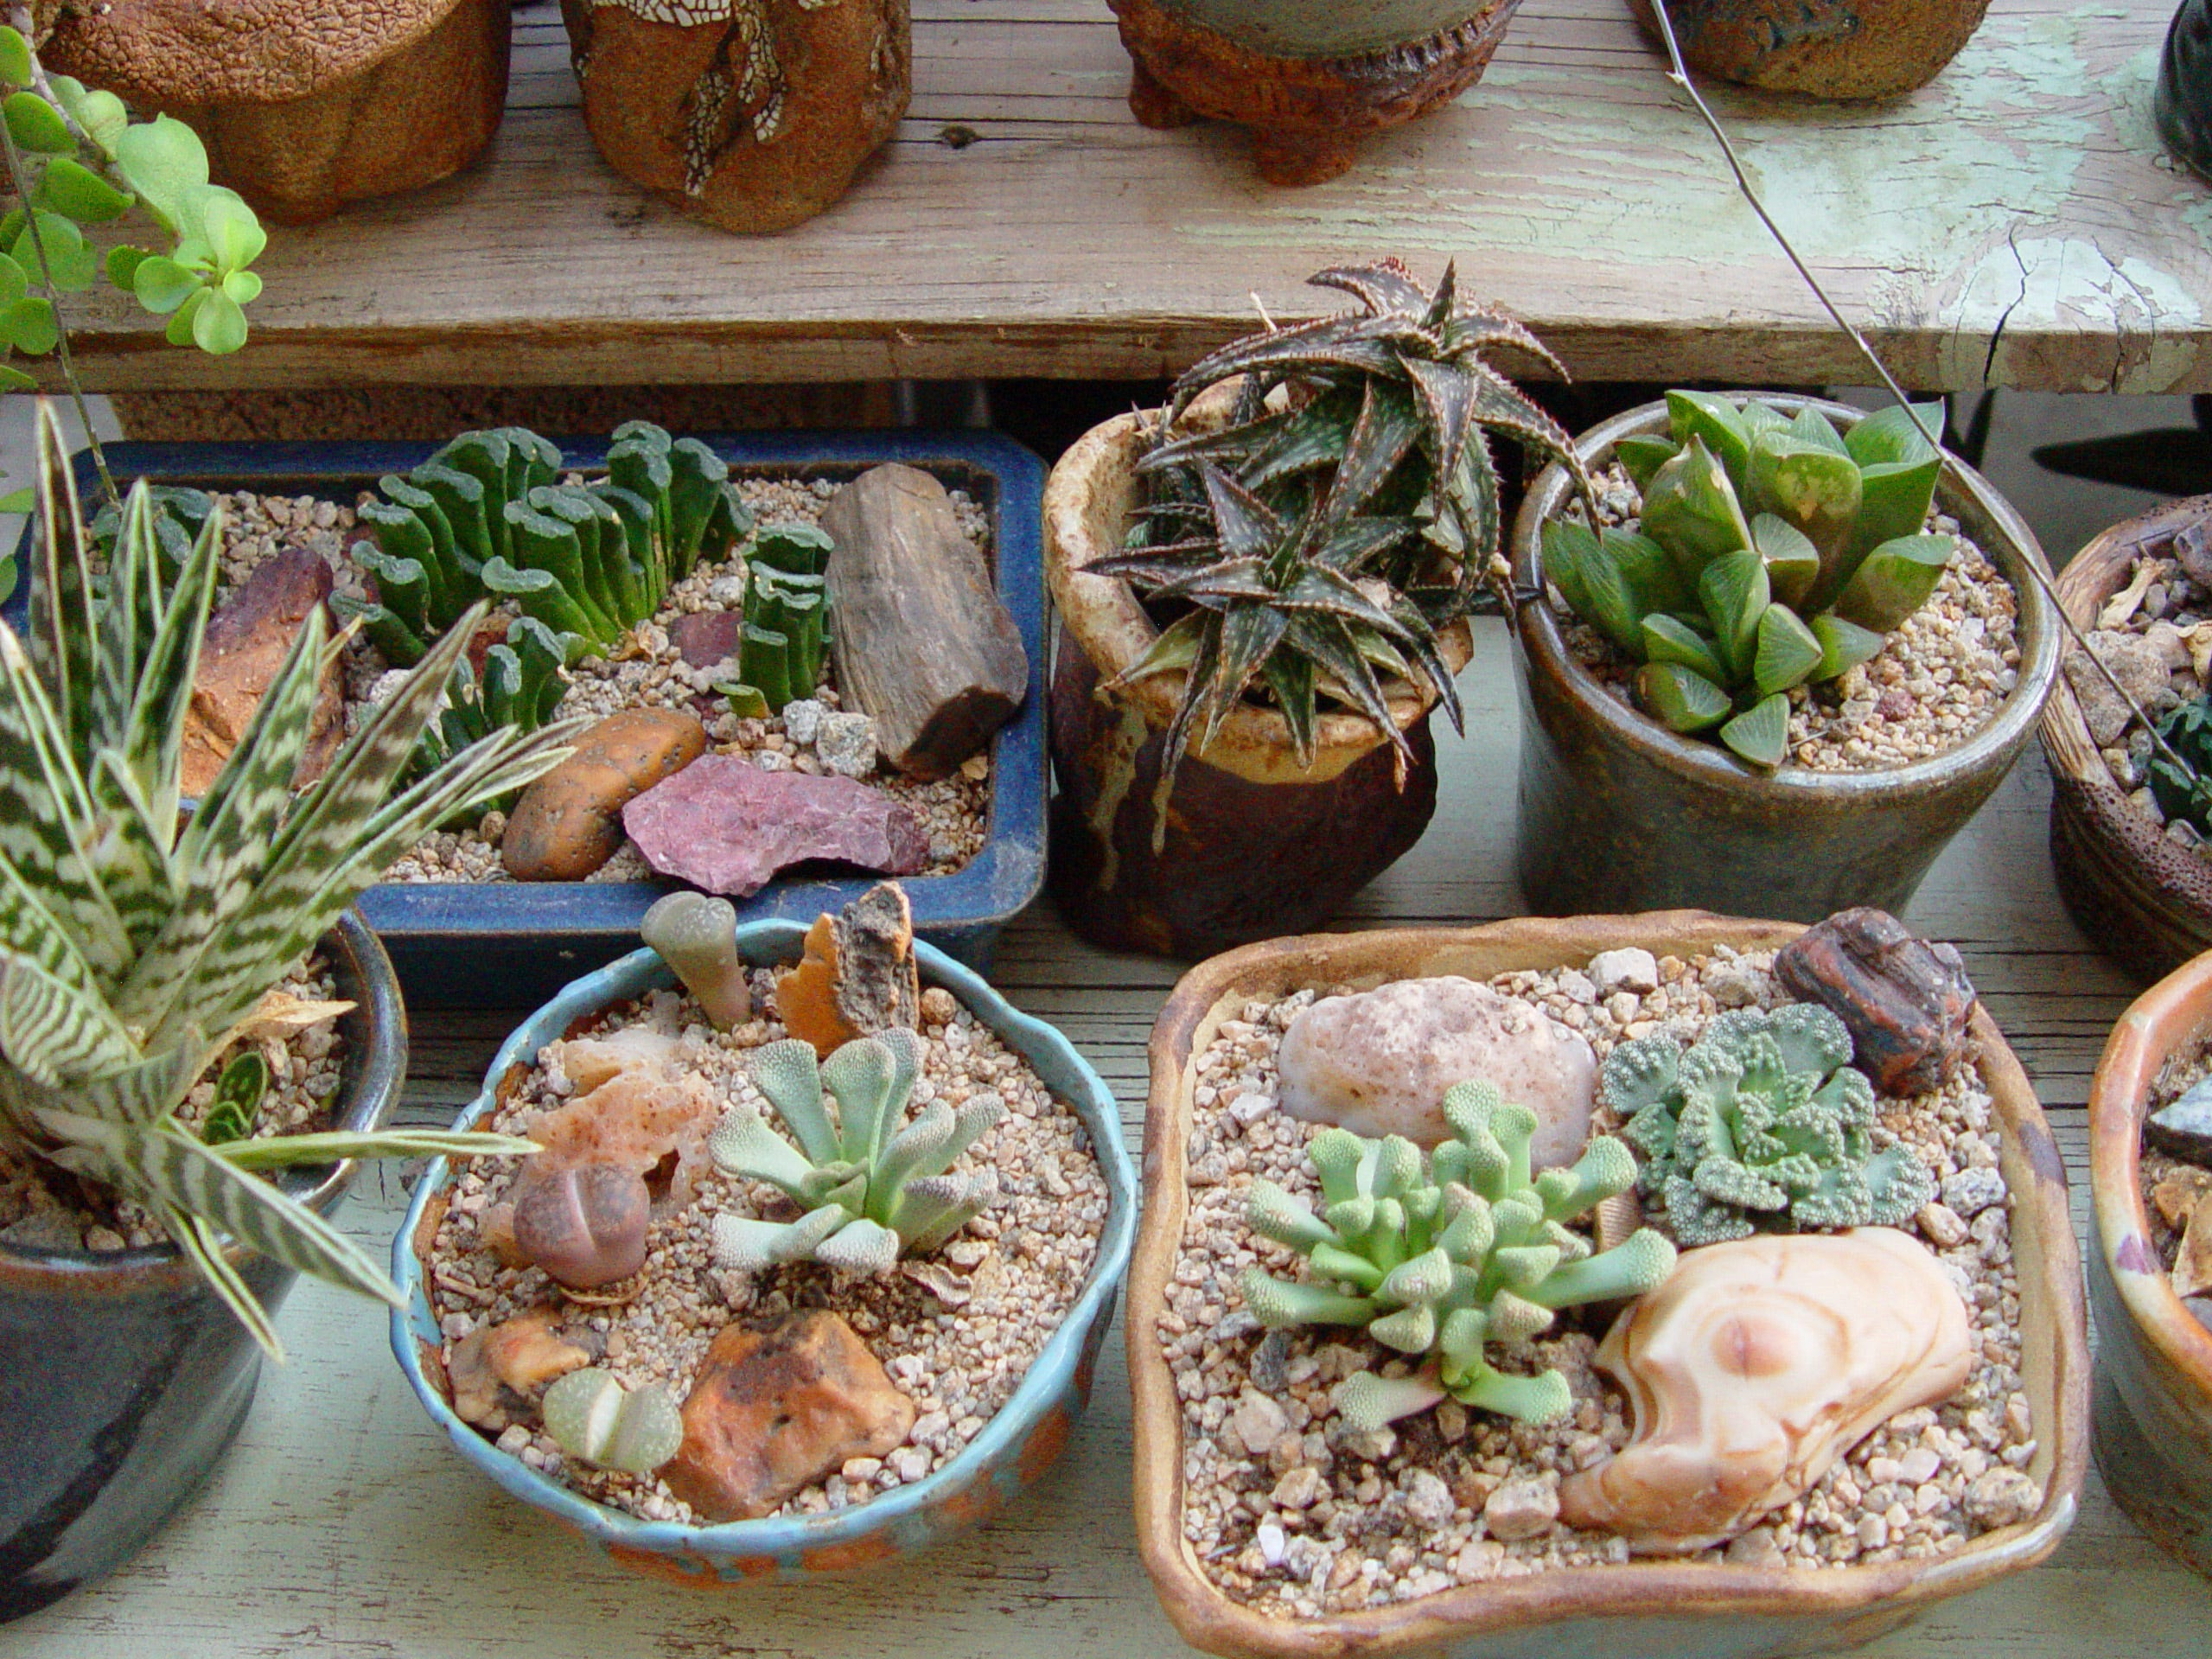 Haworthias, miniature Aloes and living stones potted to suit their natural preferences in habitat.